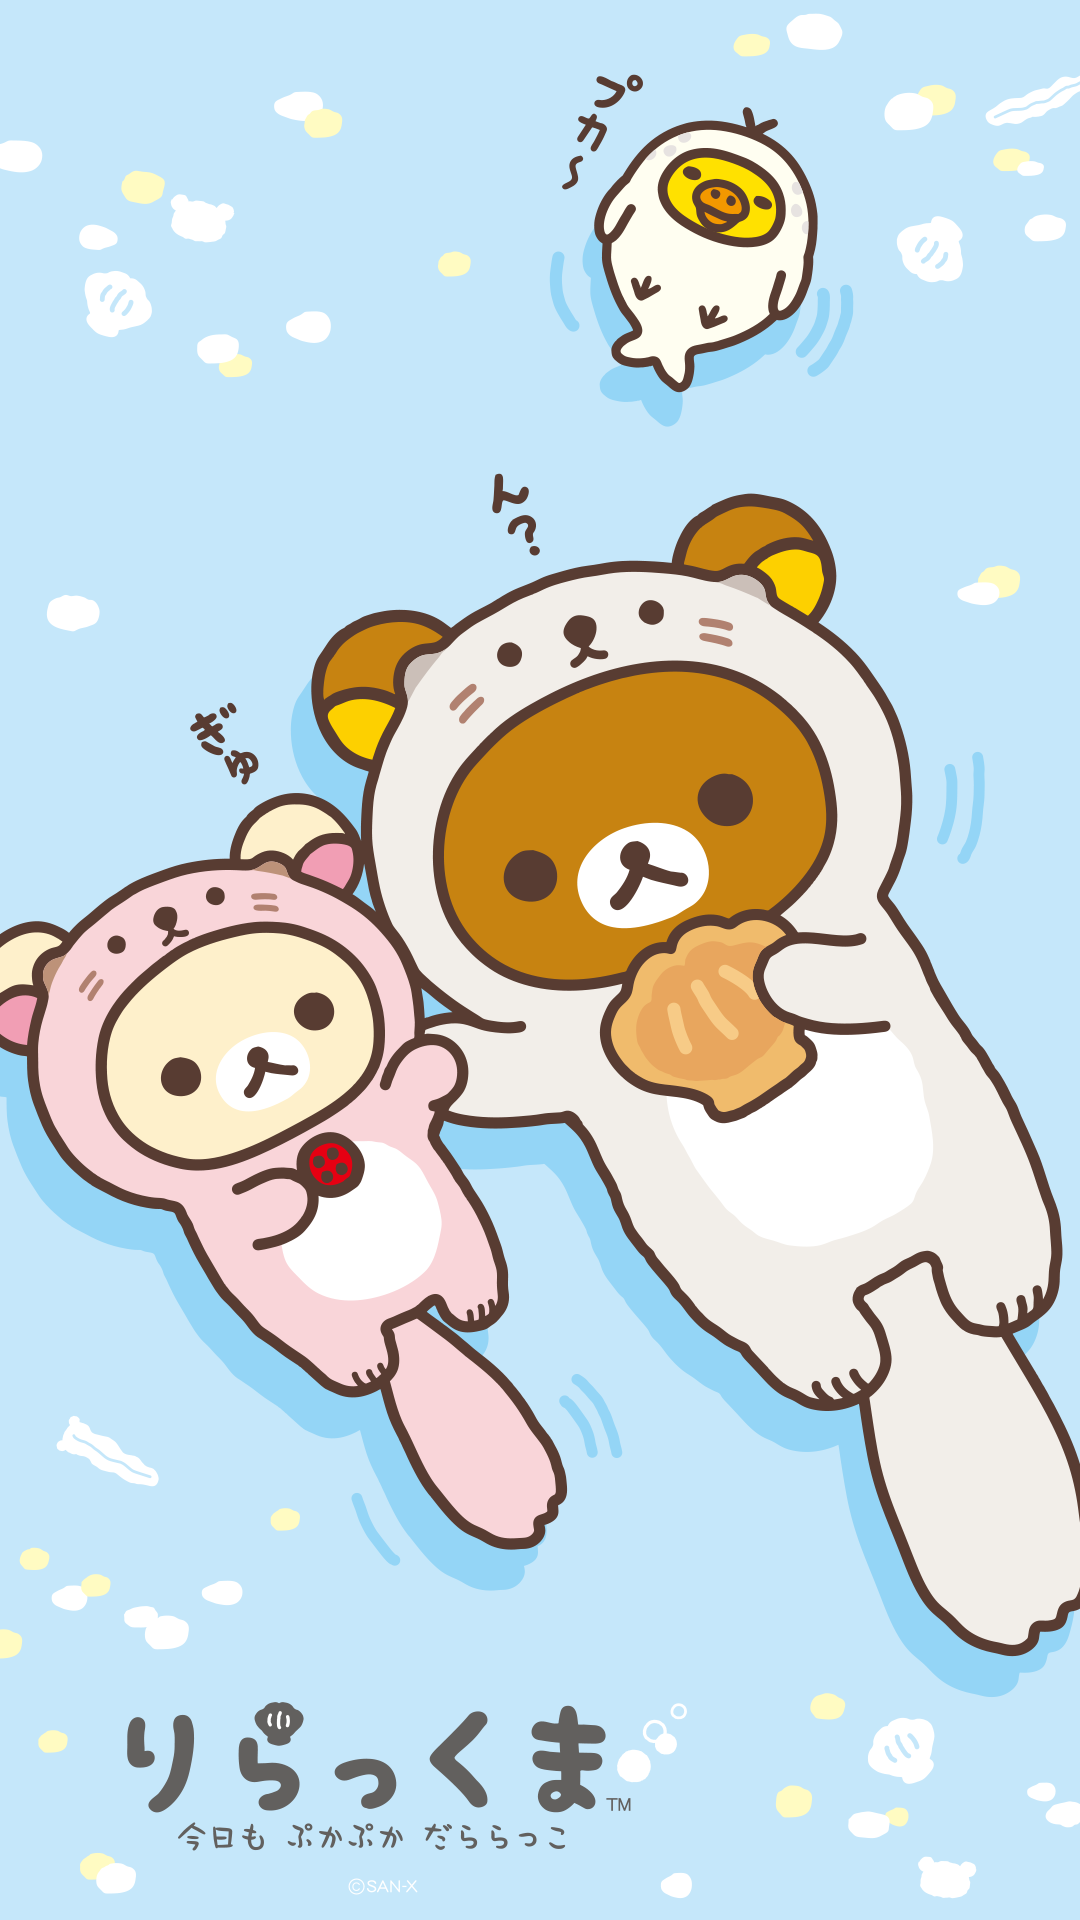 sp_1080_1920_present.png (1080×1920) Rilakkuma wallpaper